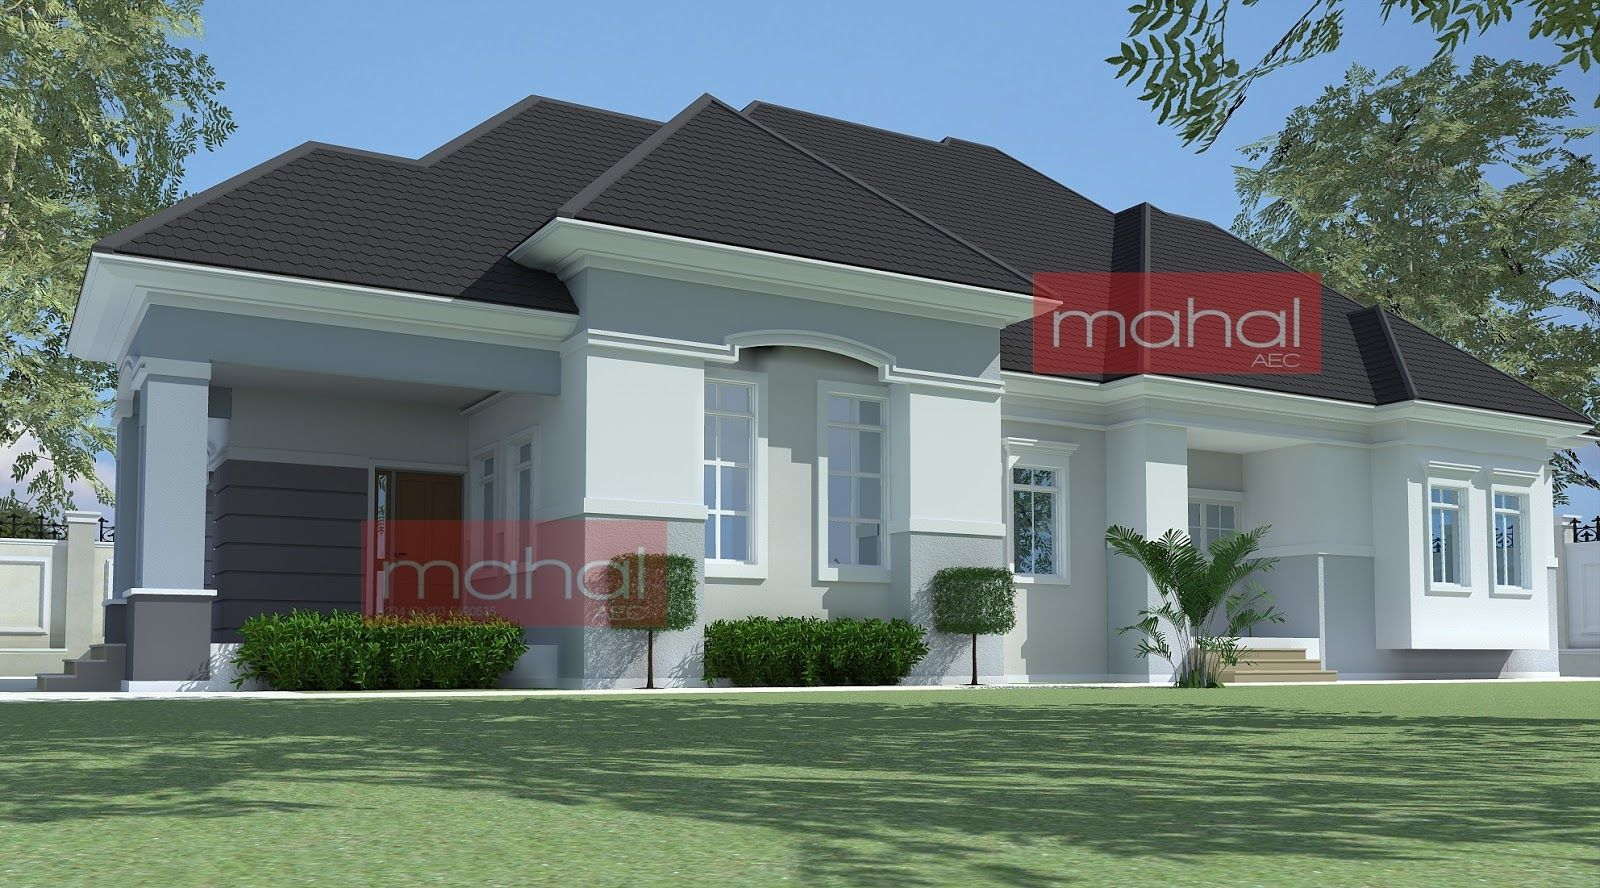 4 Bedroom Bungalow Plan in Nigeria 4 Bedroom Bungalow House Plans